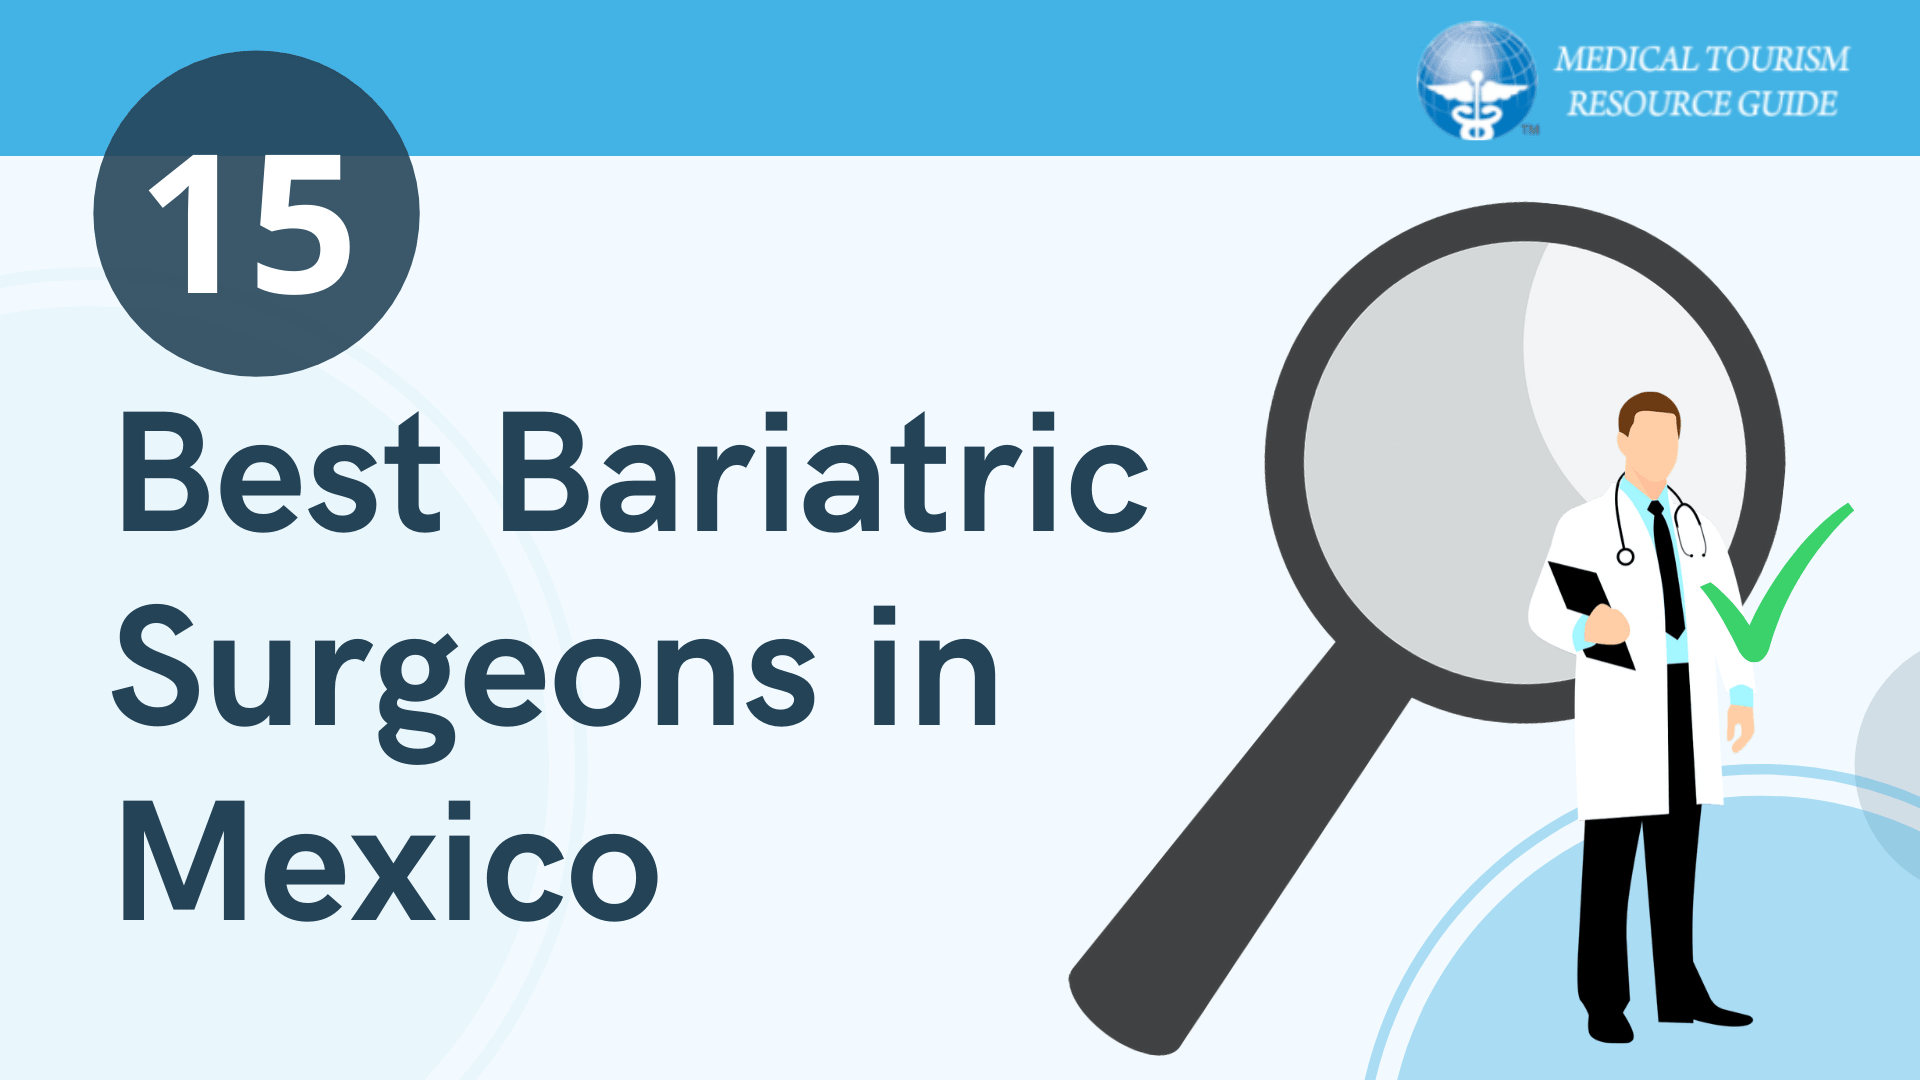 15 Best Bariatric Surgeons in Mexico - How to Find the Best Surgeon